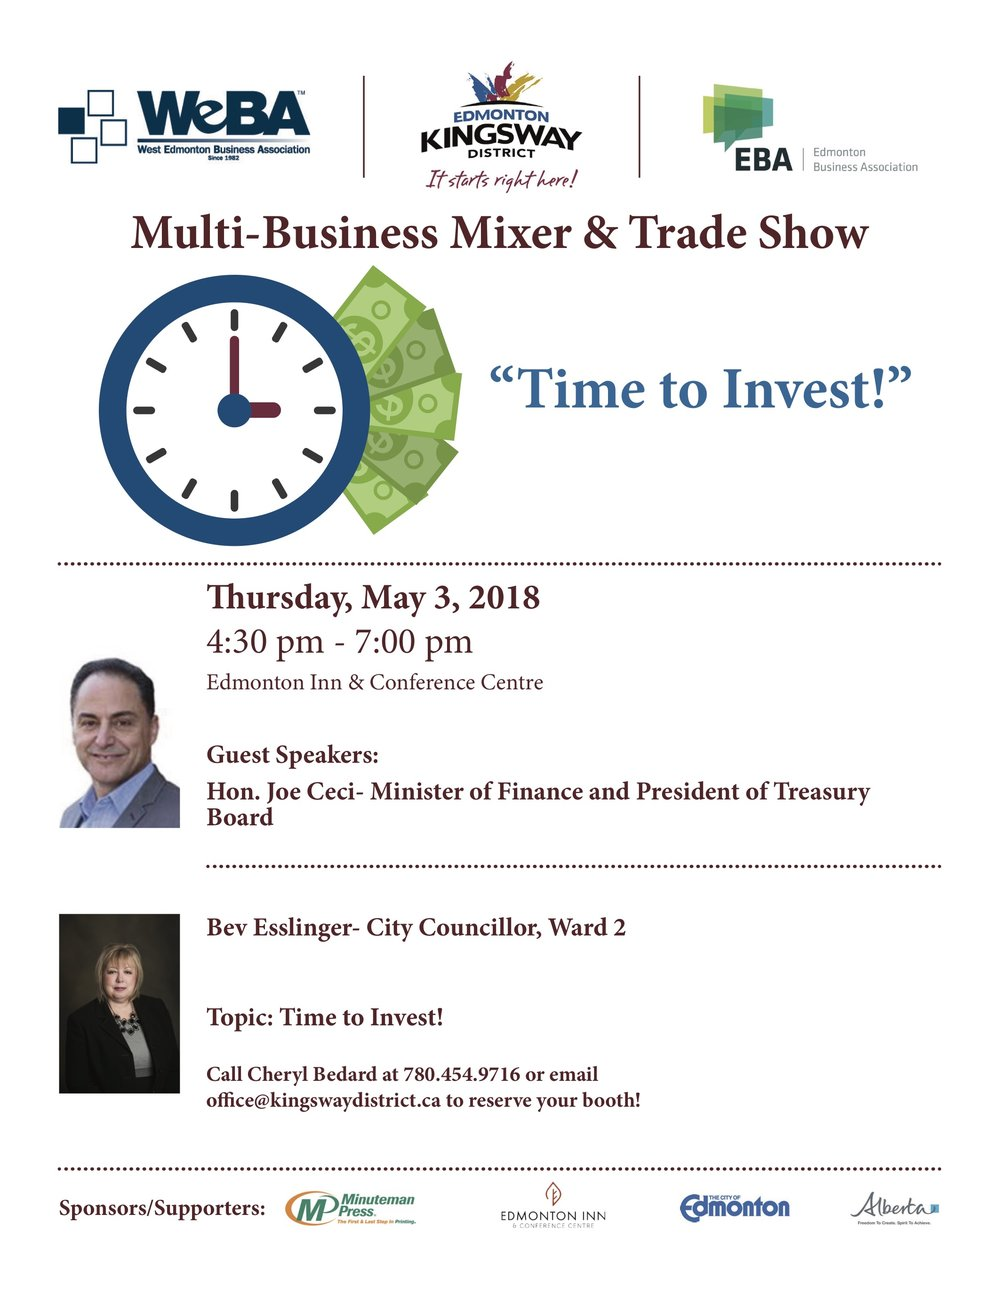 Multibusiness Mixer_Information_2018 copy.jpg